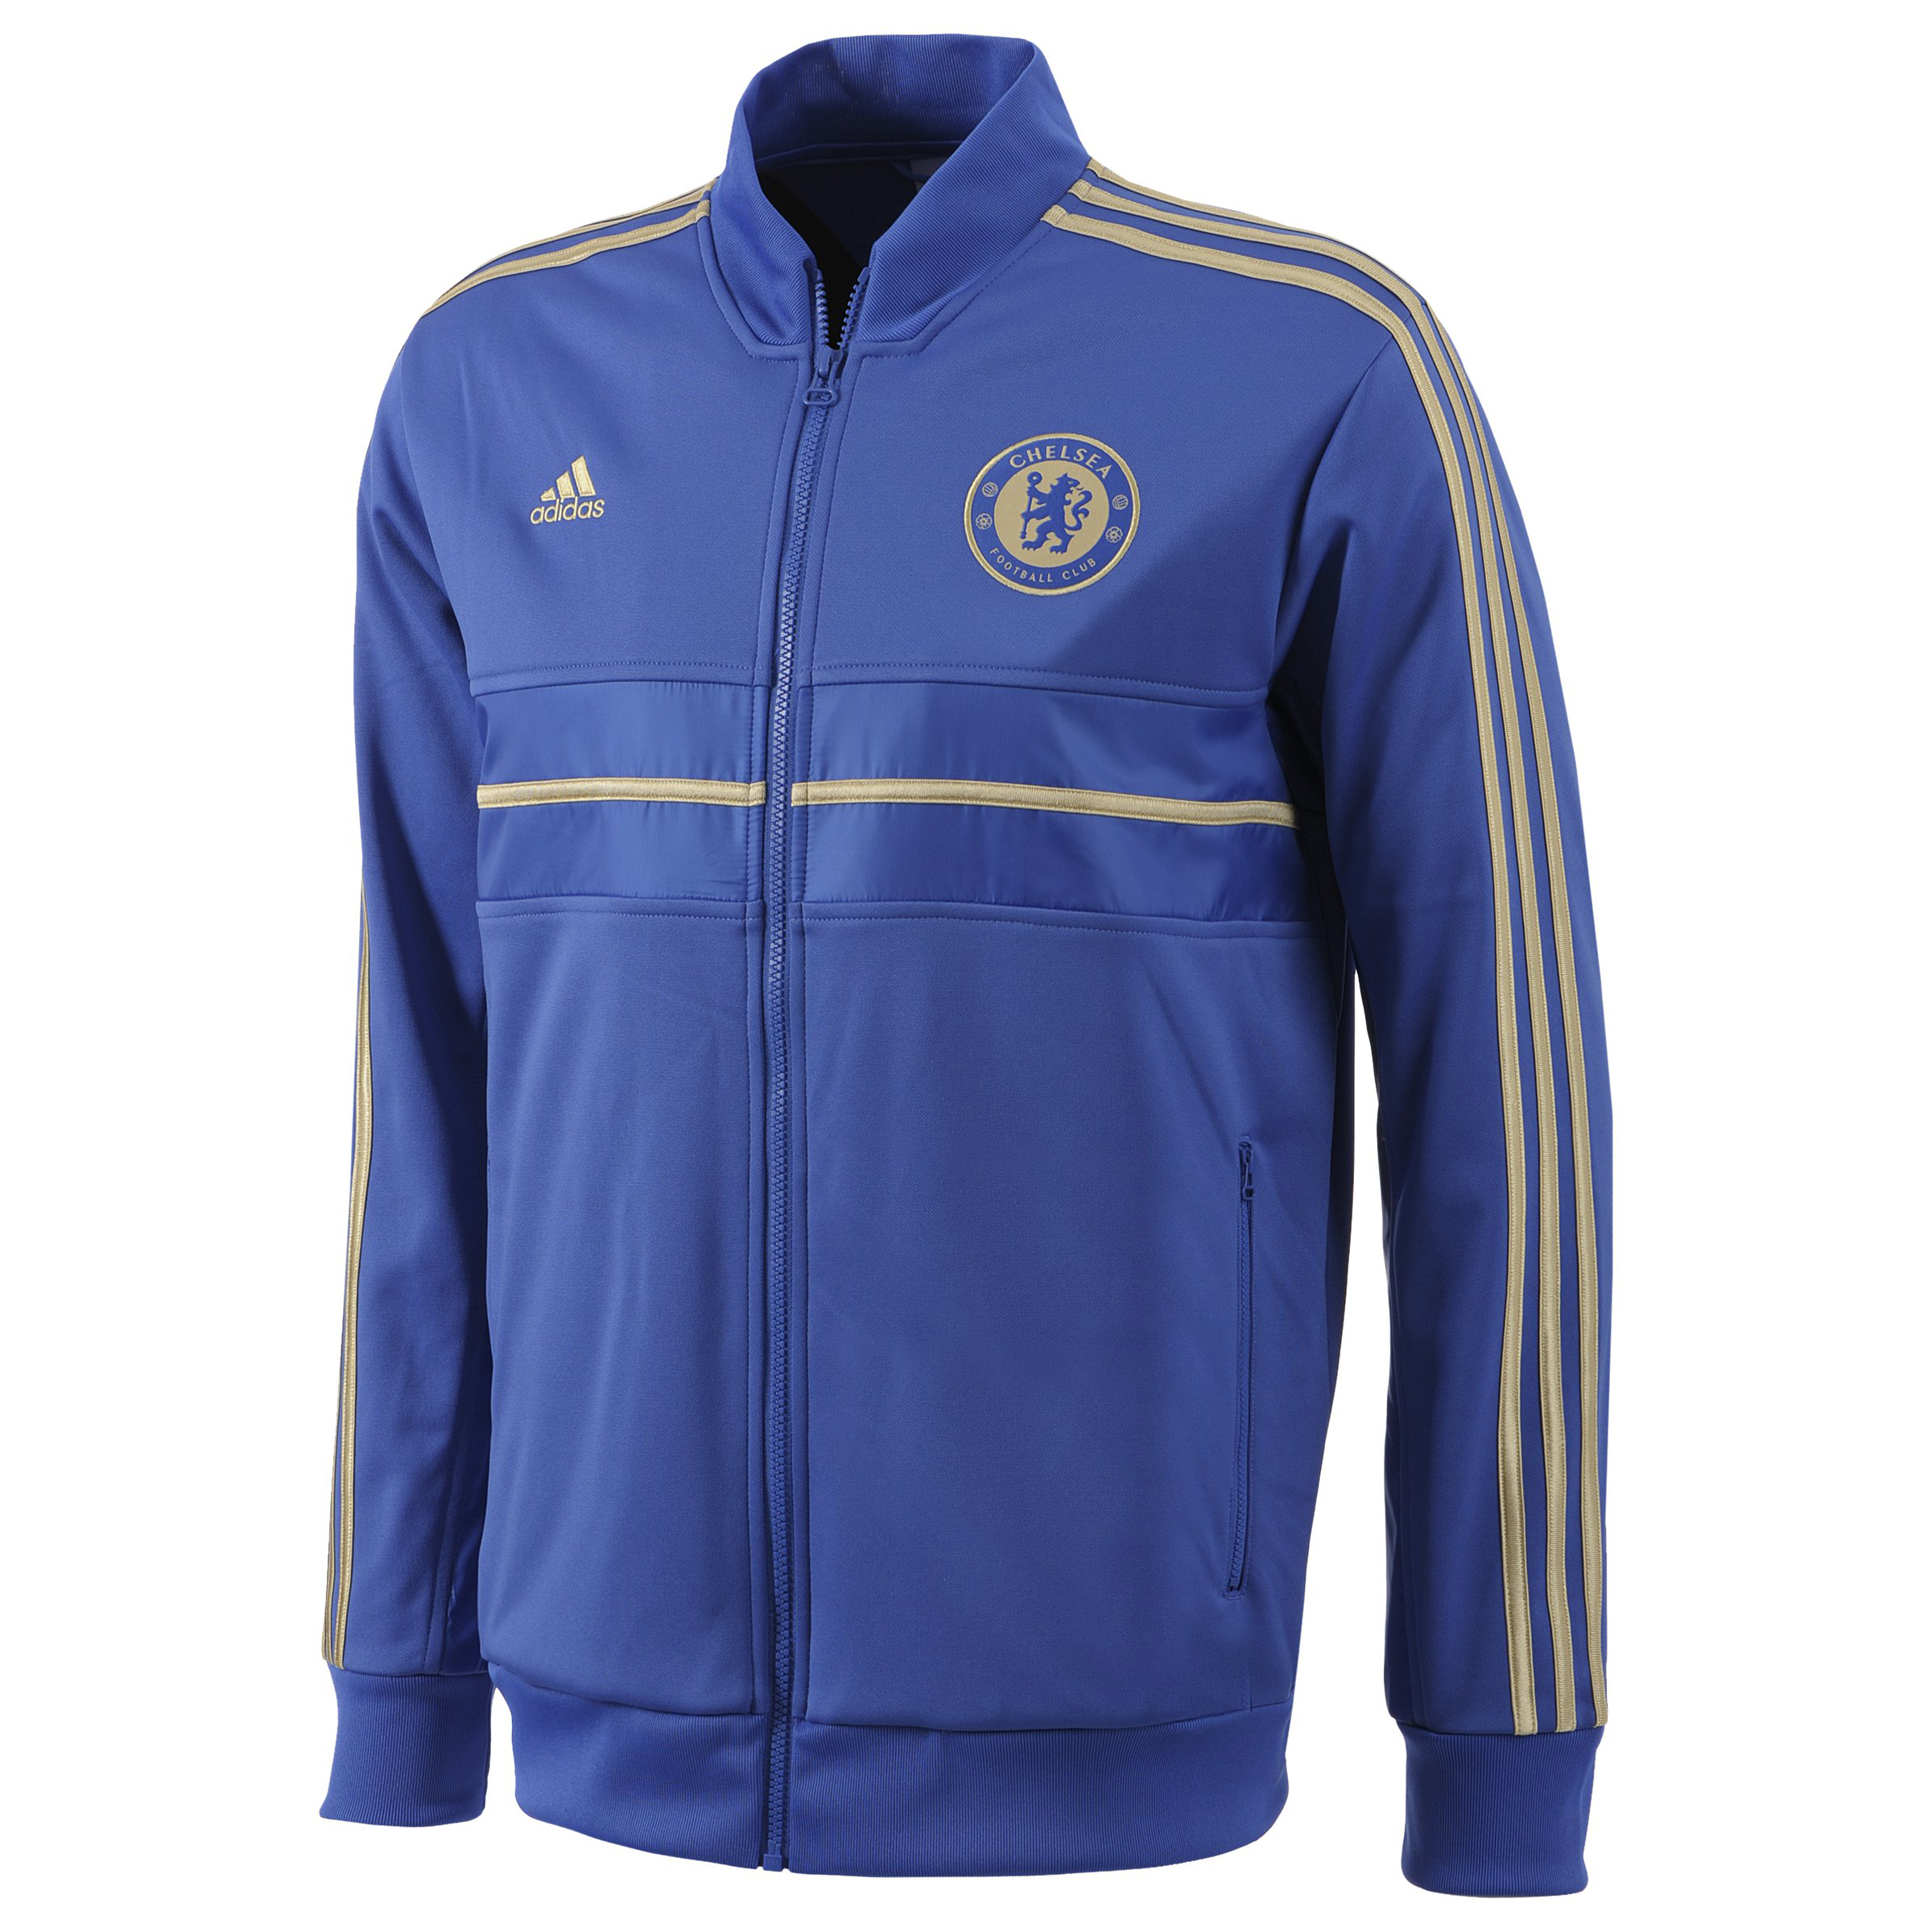 Chelsea Anthem Jacket - Reflex Blue/Light Football Gold - Kids